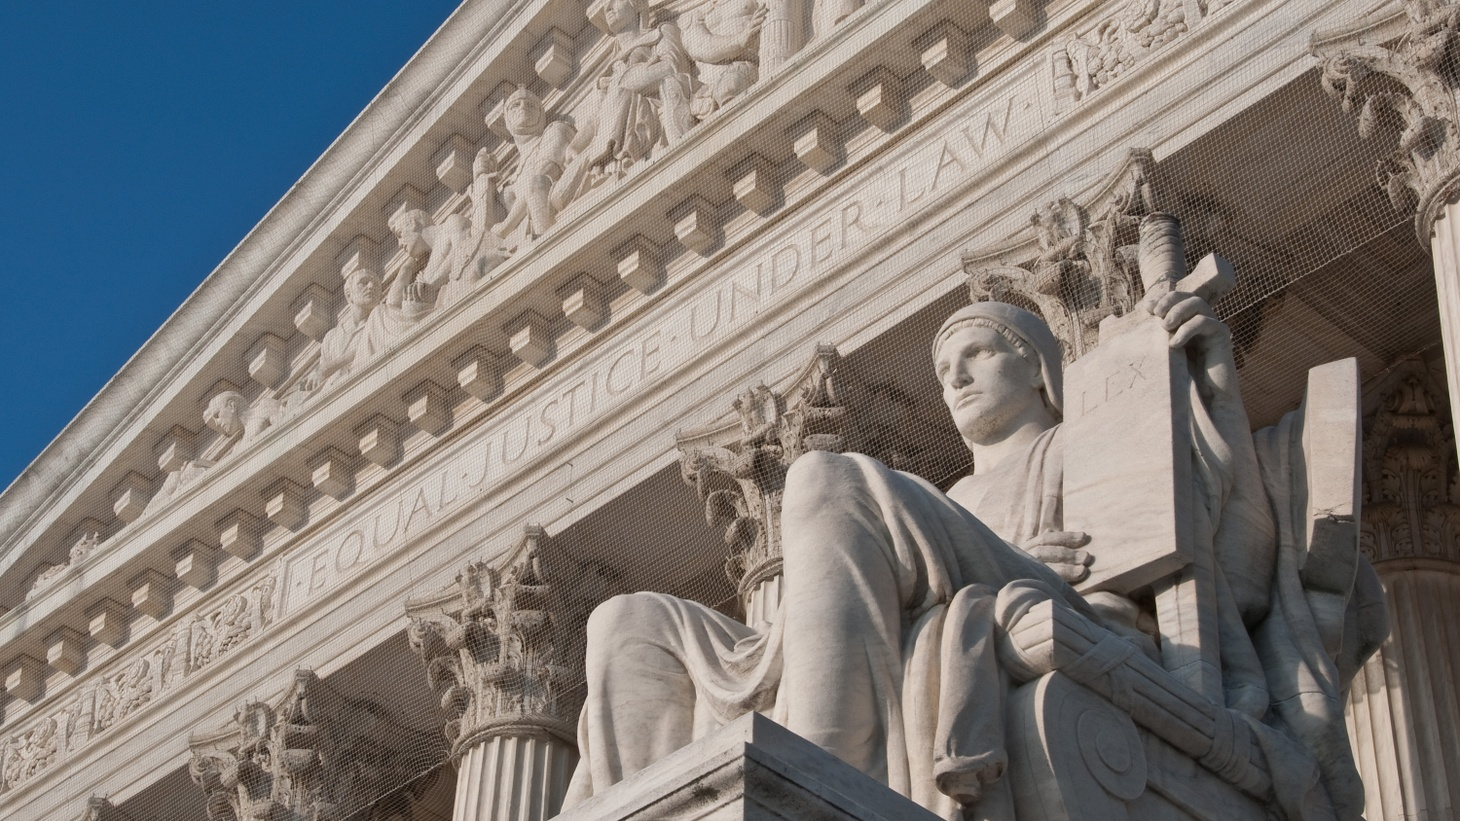 """As the US Supreme Court considers same-sex marriage, Justice Anthony Kennedy is considered the """"swing vote."""" Today, he was the first to ask if the court should wait to assess the impact of sudden change on an age-old institution. We'll hear about a court session with historic implications."""